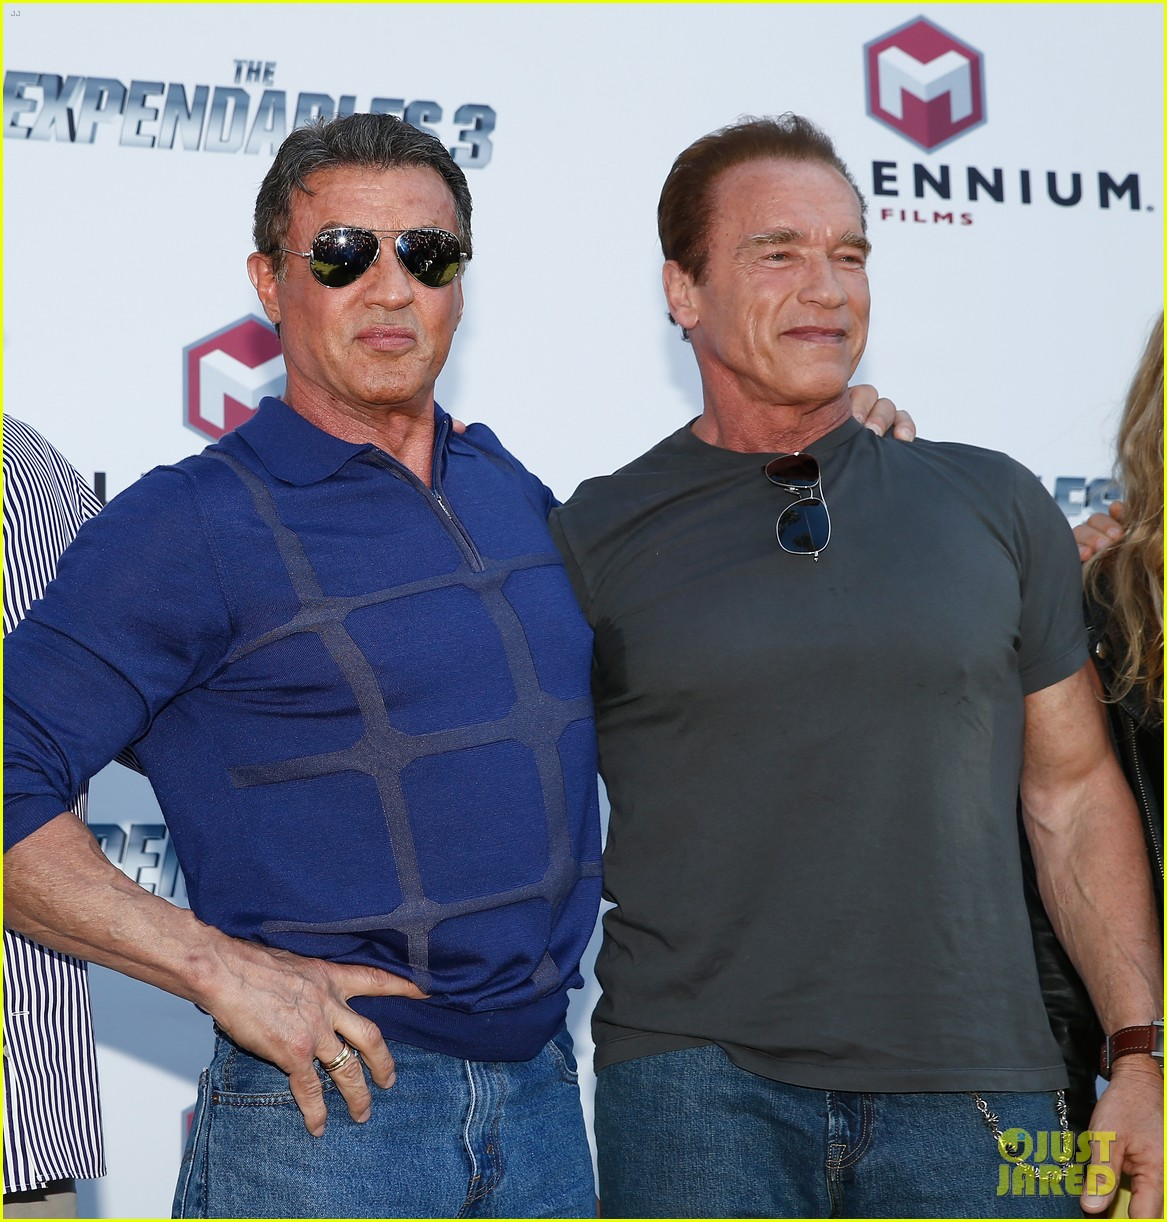 ¿Cuánto mide Sylvester Stallone? - Altura - Real height Jason-statham-star-studded-expendables-3-photo-call-06